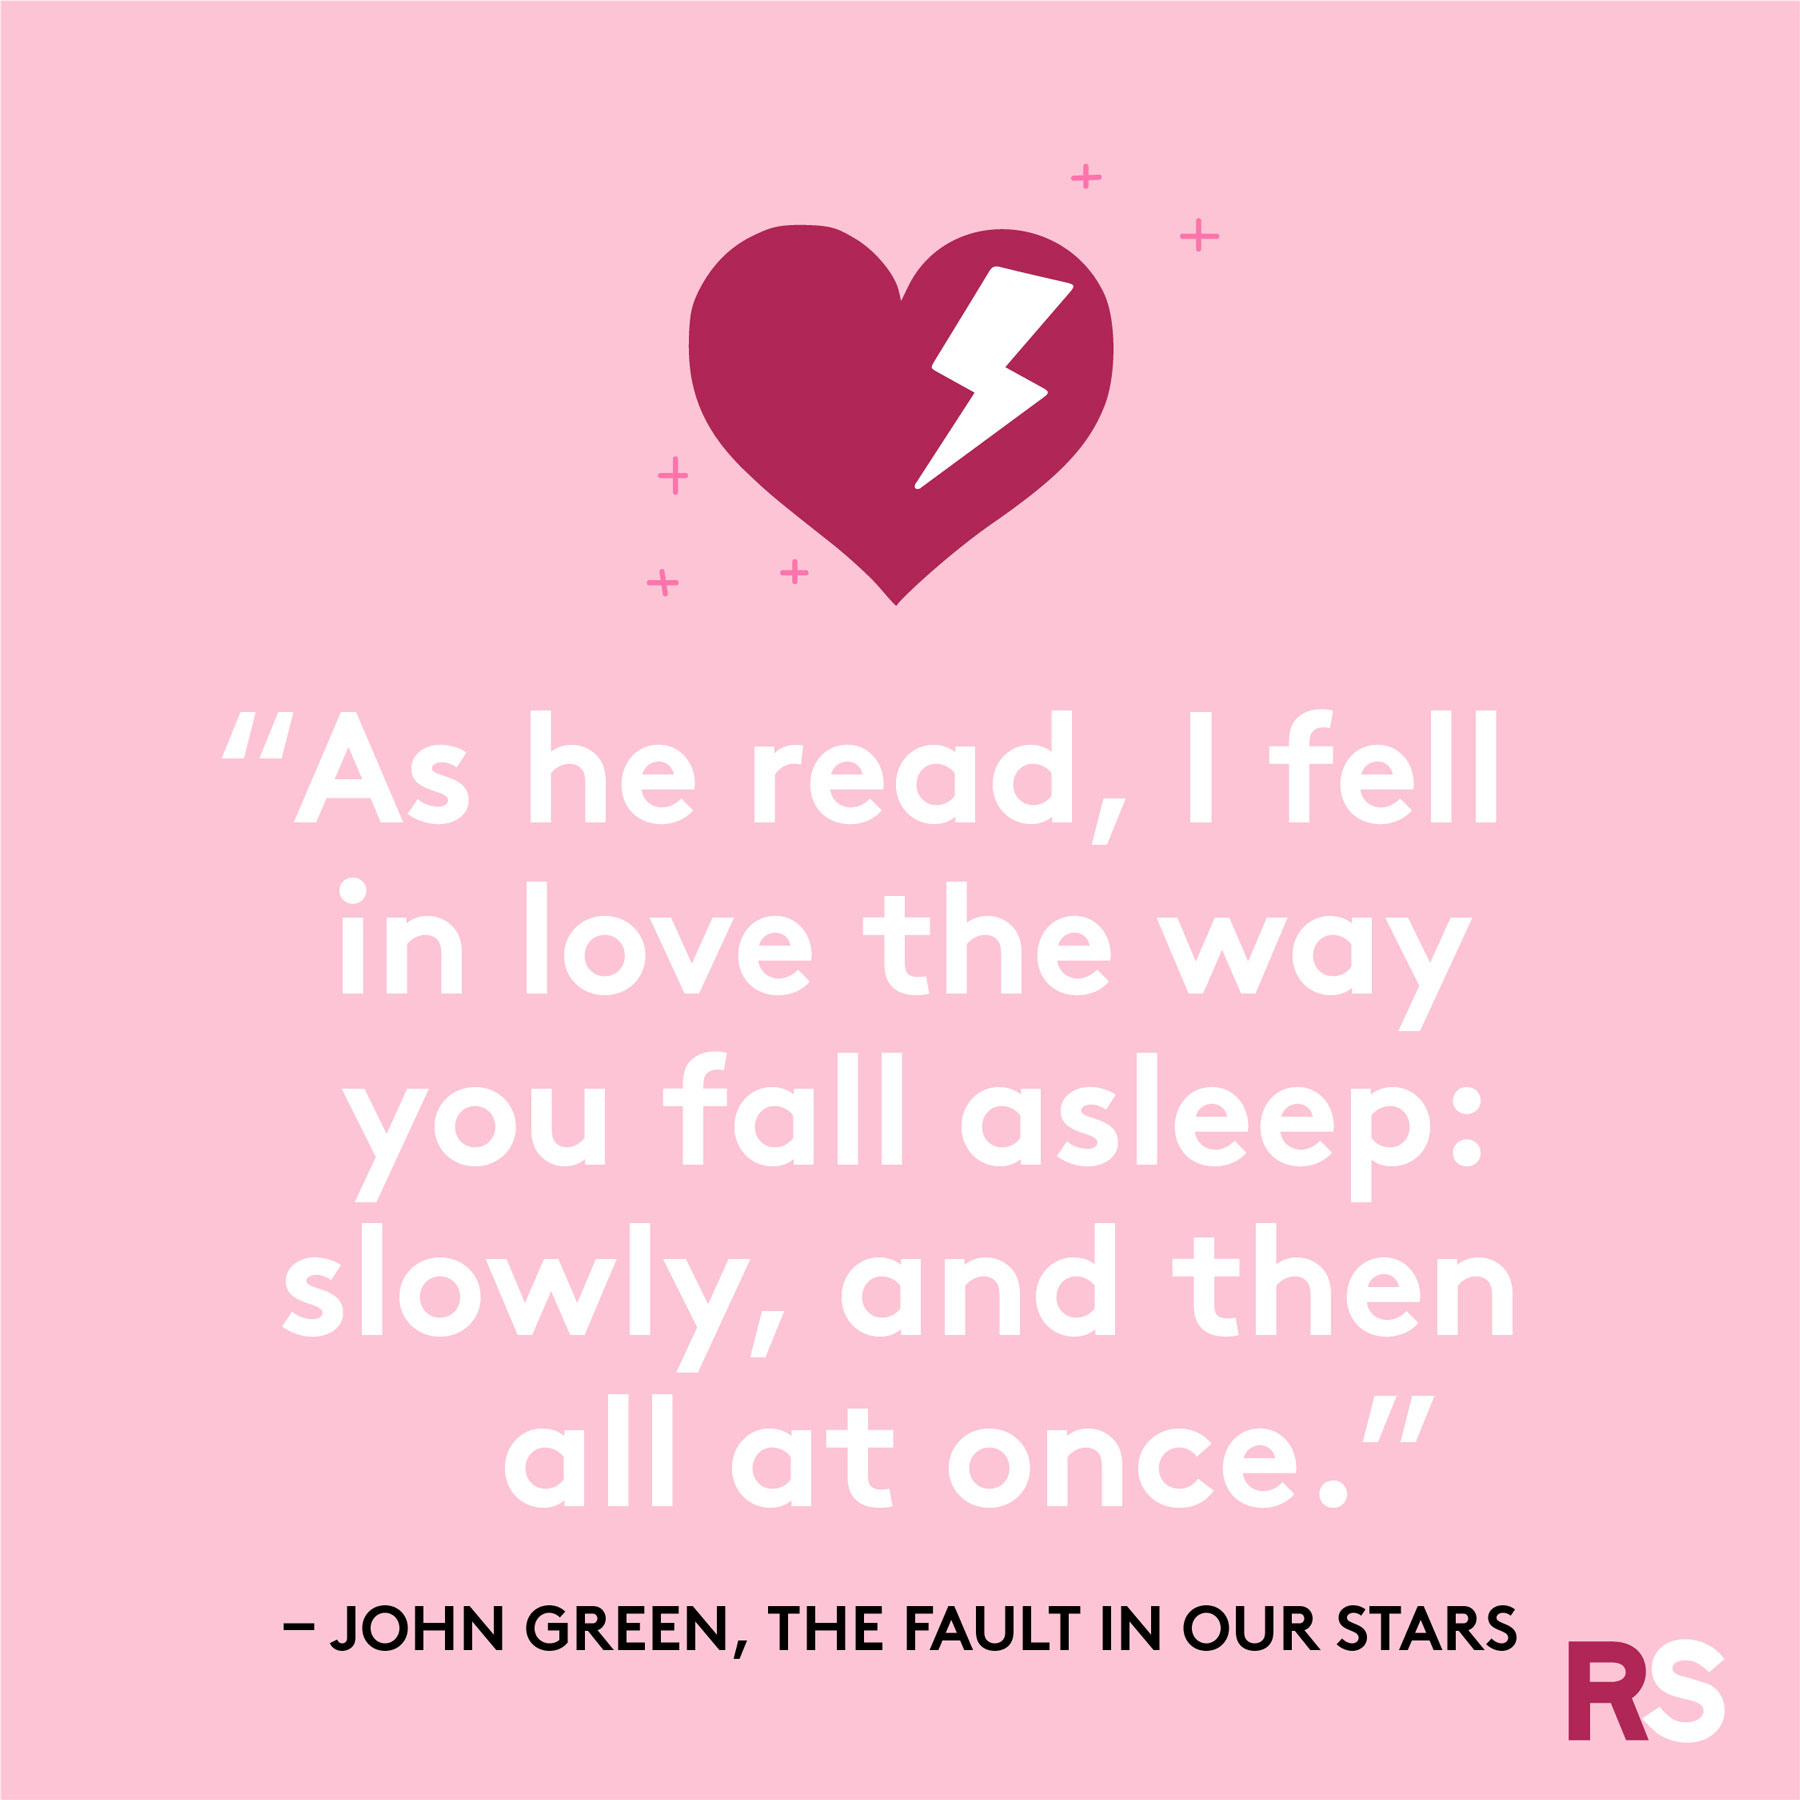 Love quotes, quotes about love - John Green, The Fault in Our Stars